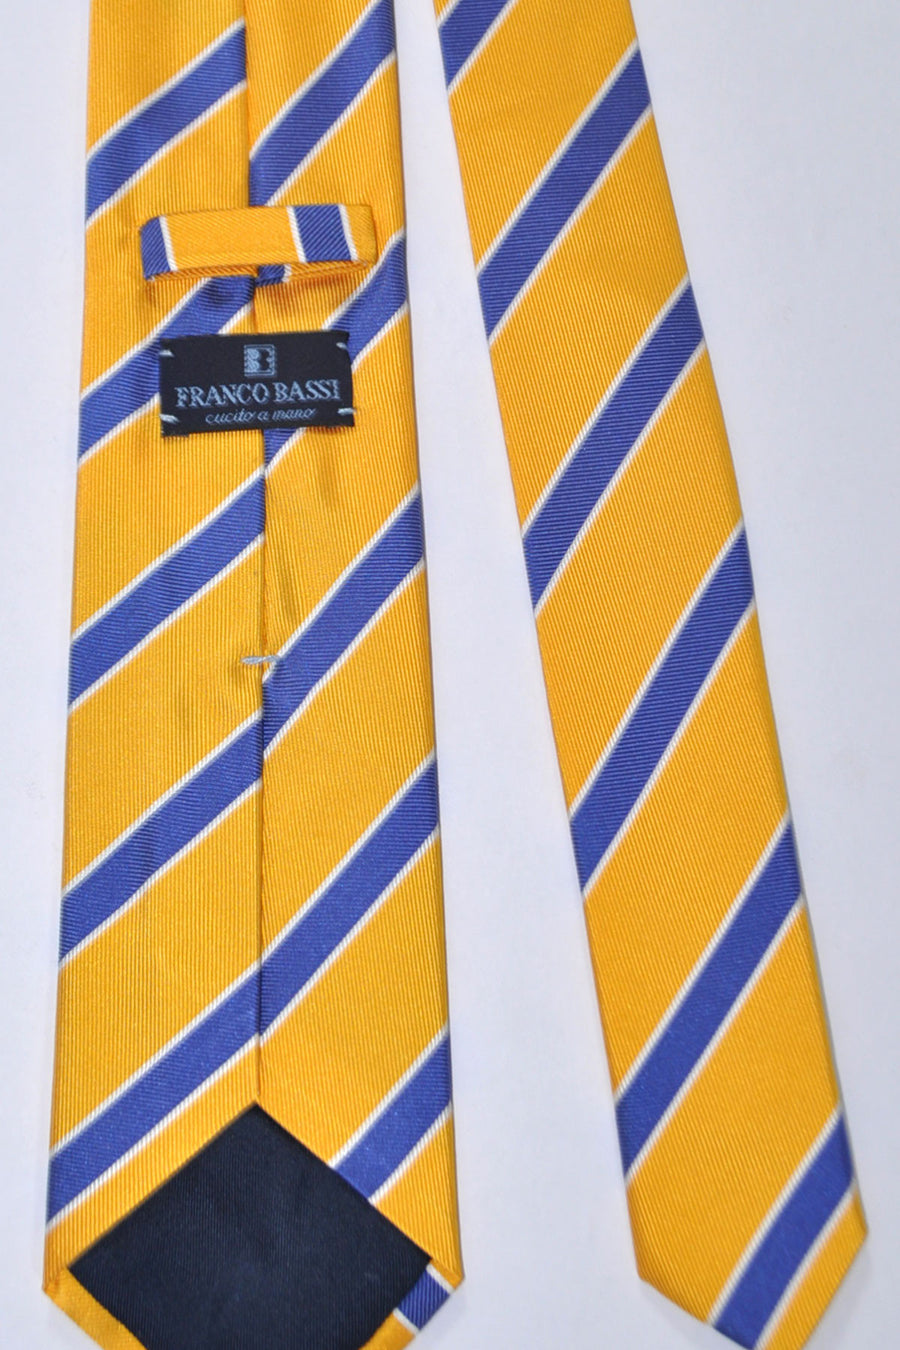 Franco Bassi Silk Tie Yellow Royal Blue Silver Stripes - Made in Italy